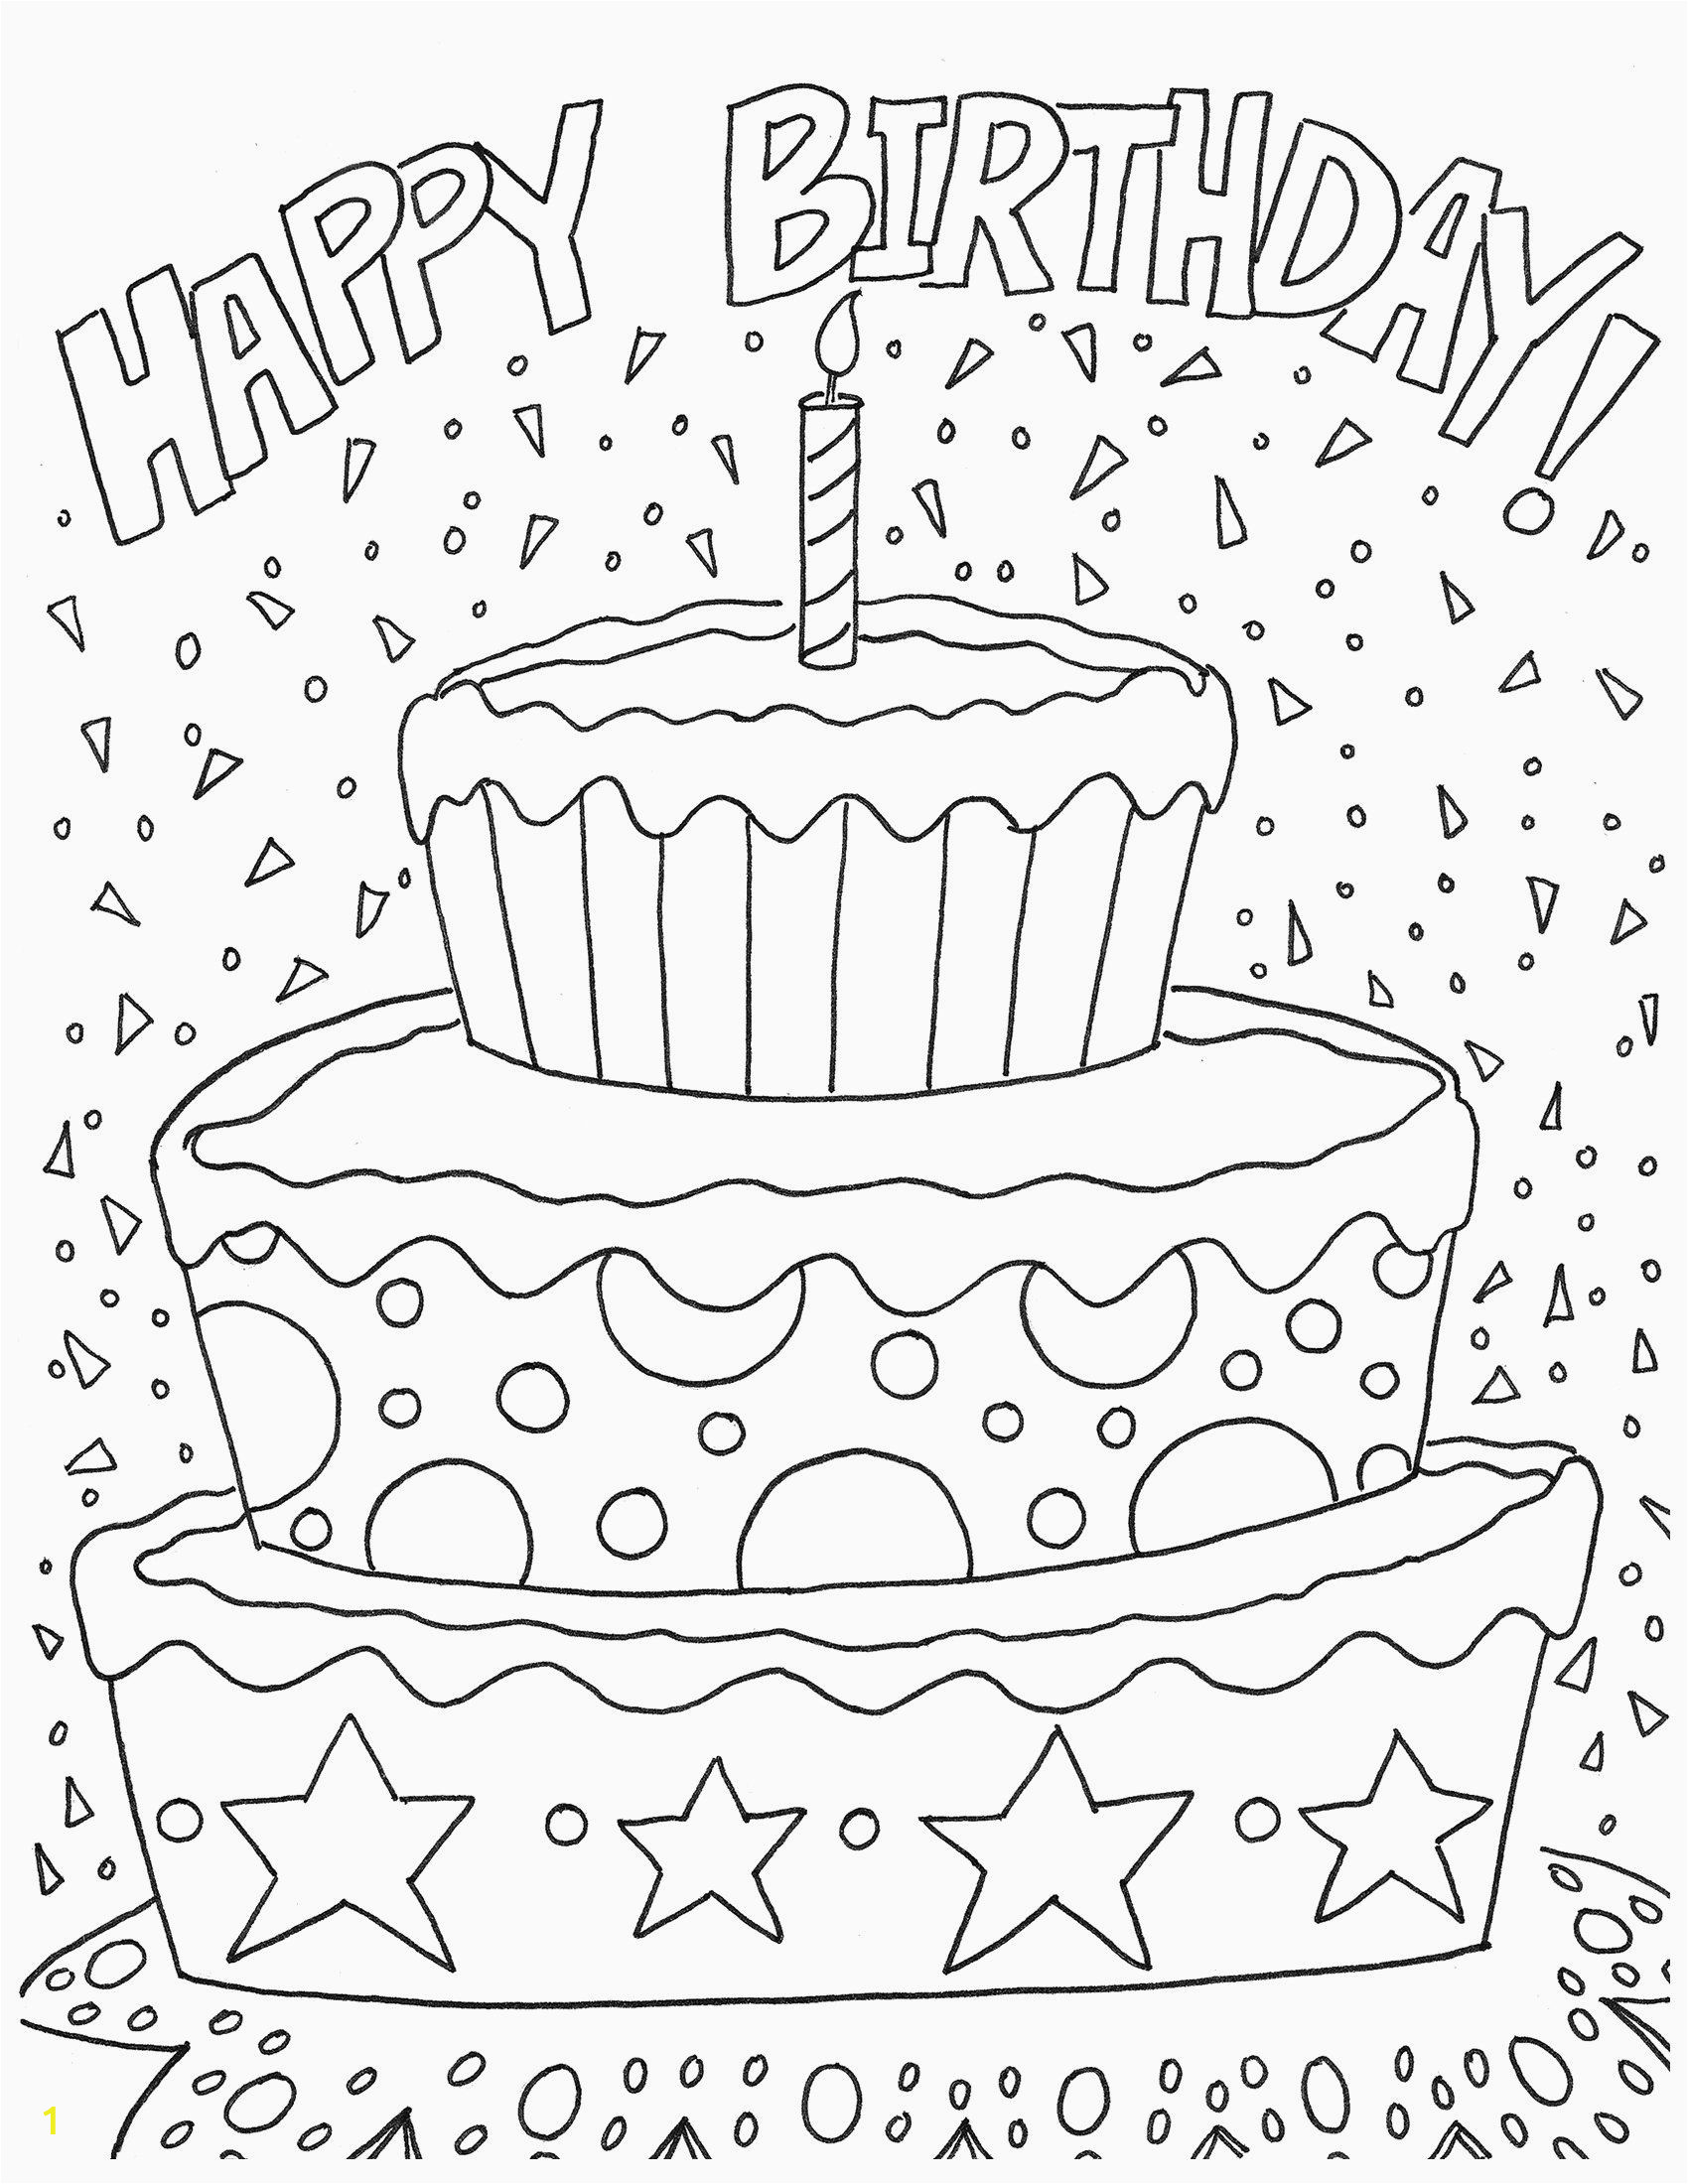 Happy Birthday Coloring Pages Printable 28 Happy Birthday Coloring Page In 2020 with Images